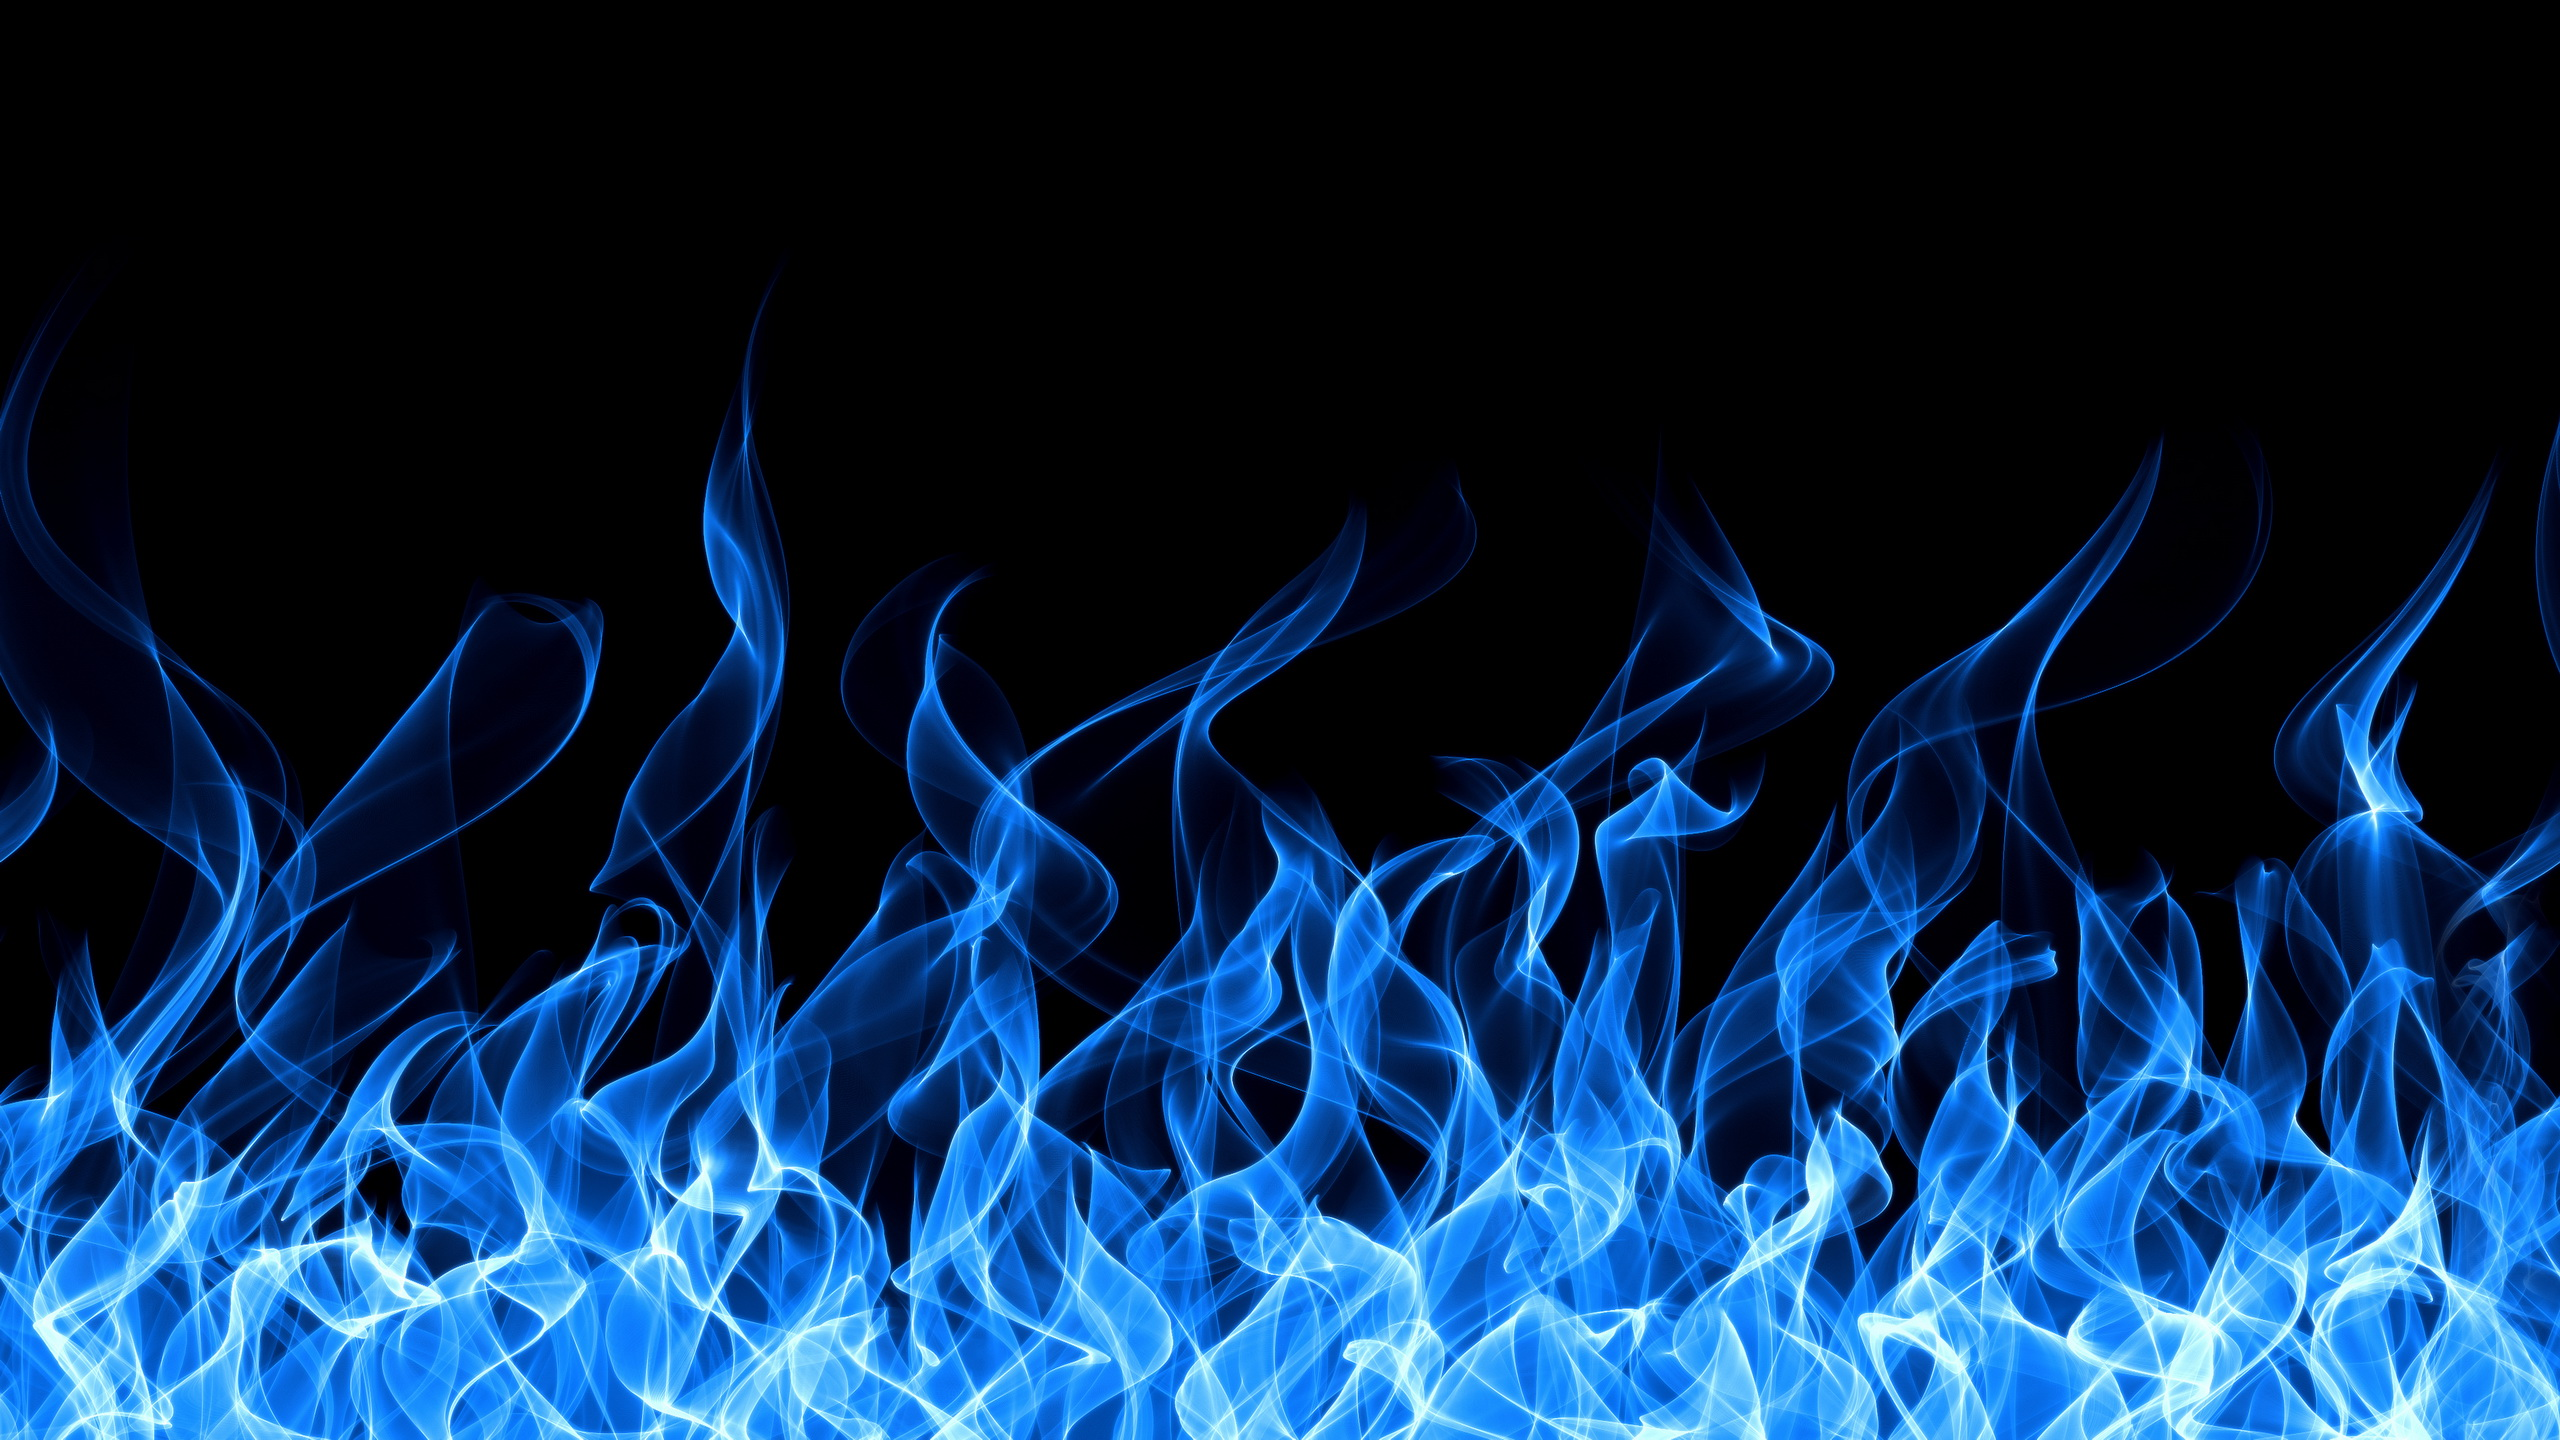 Blue Fire Wallpaper Images amp Pictures   Becuo 2560x1440